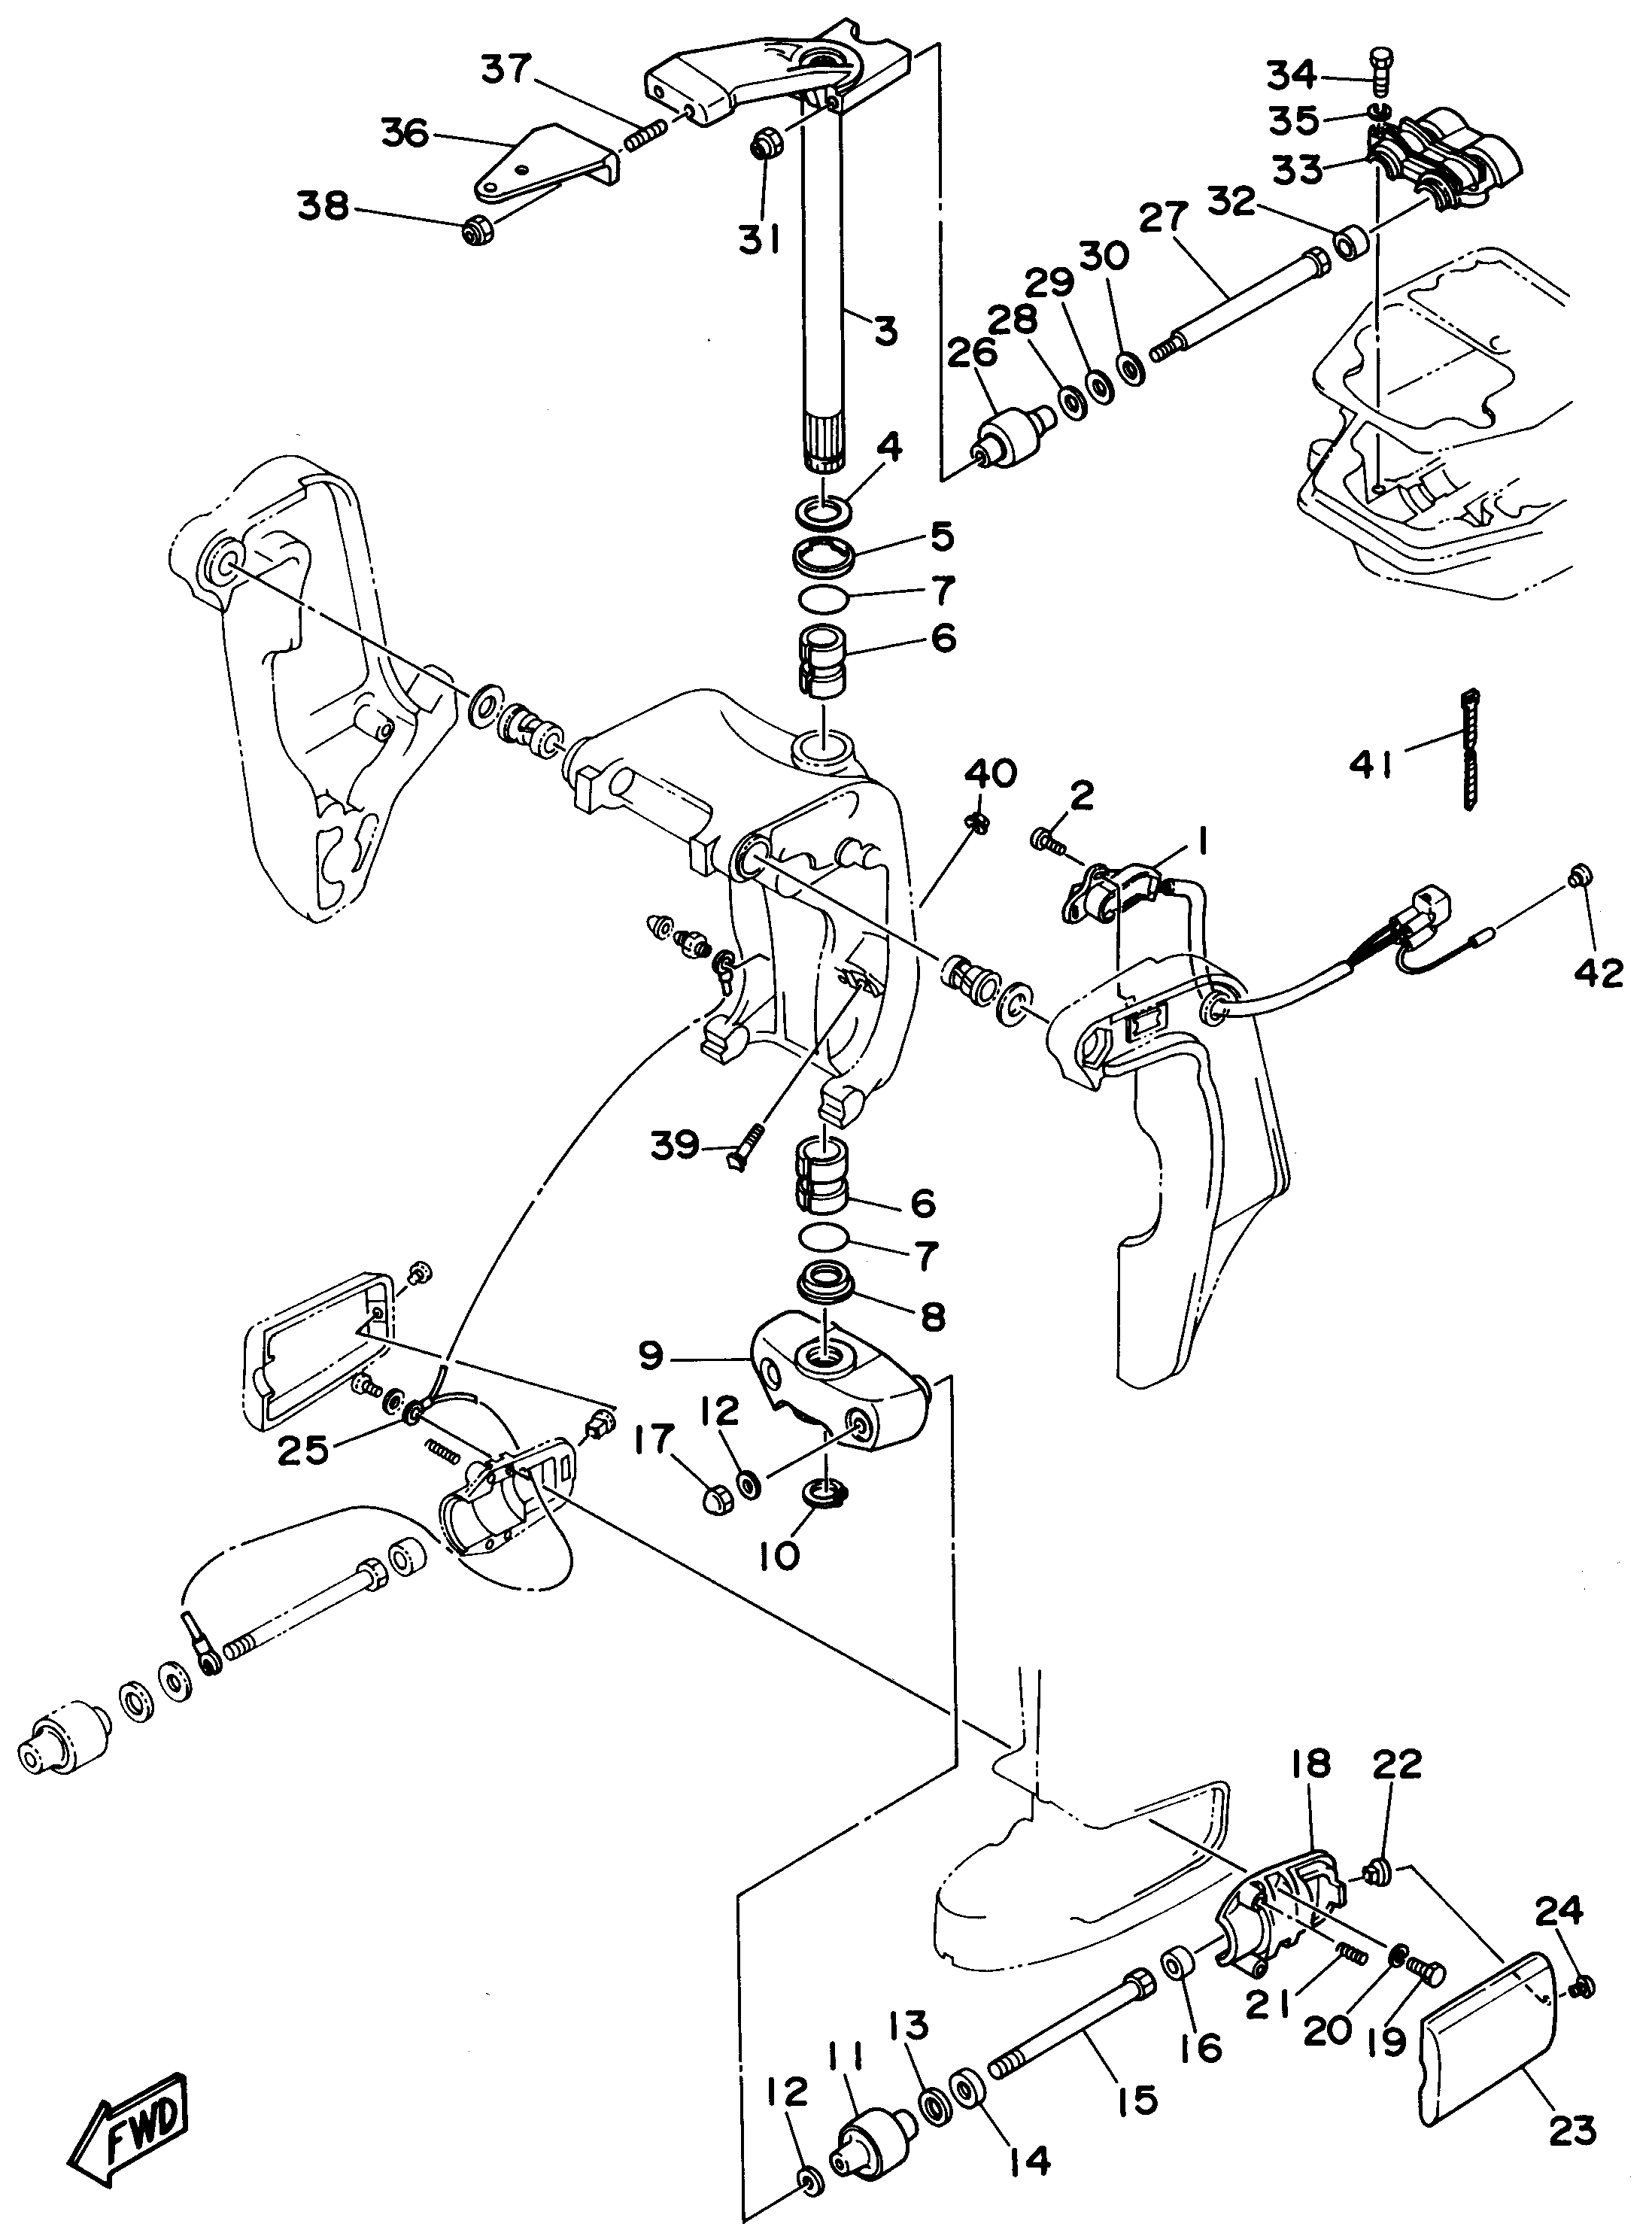 johnson 9.9 wiring diagram